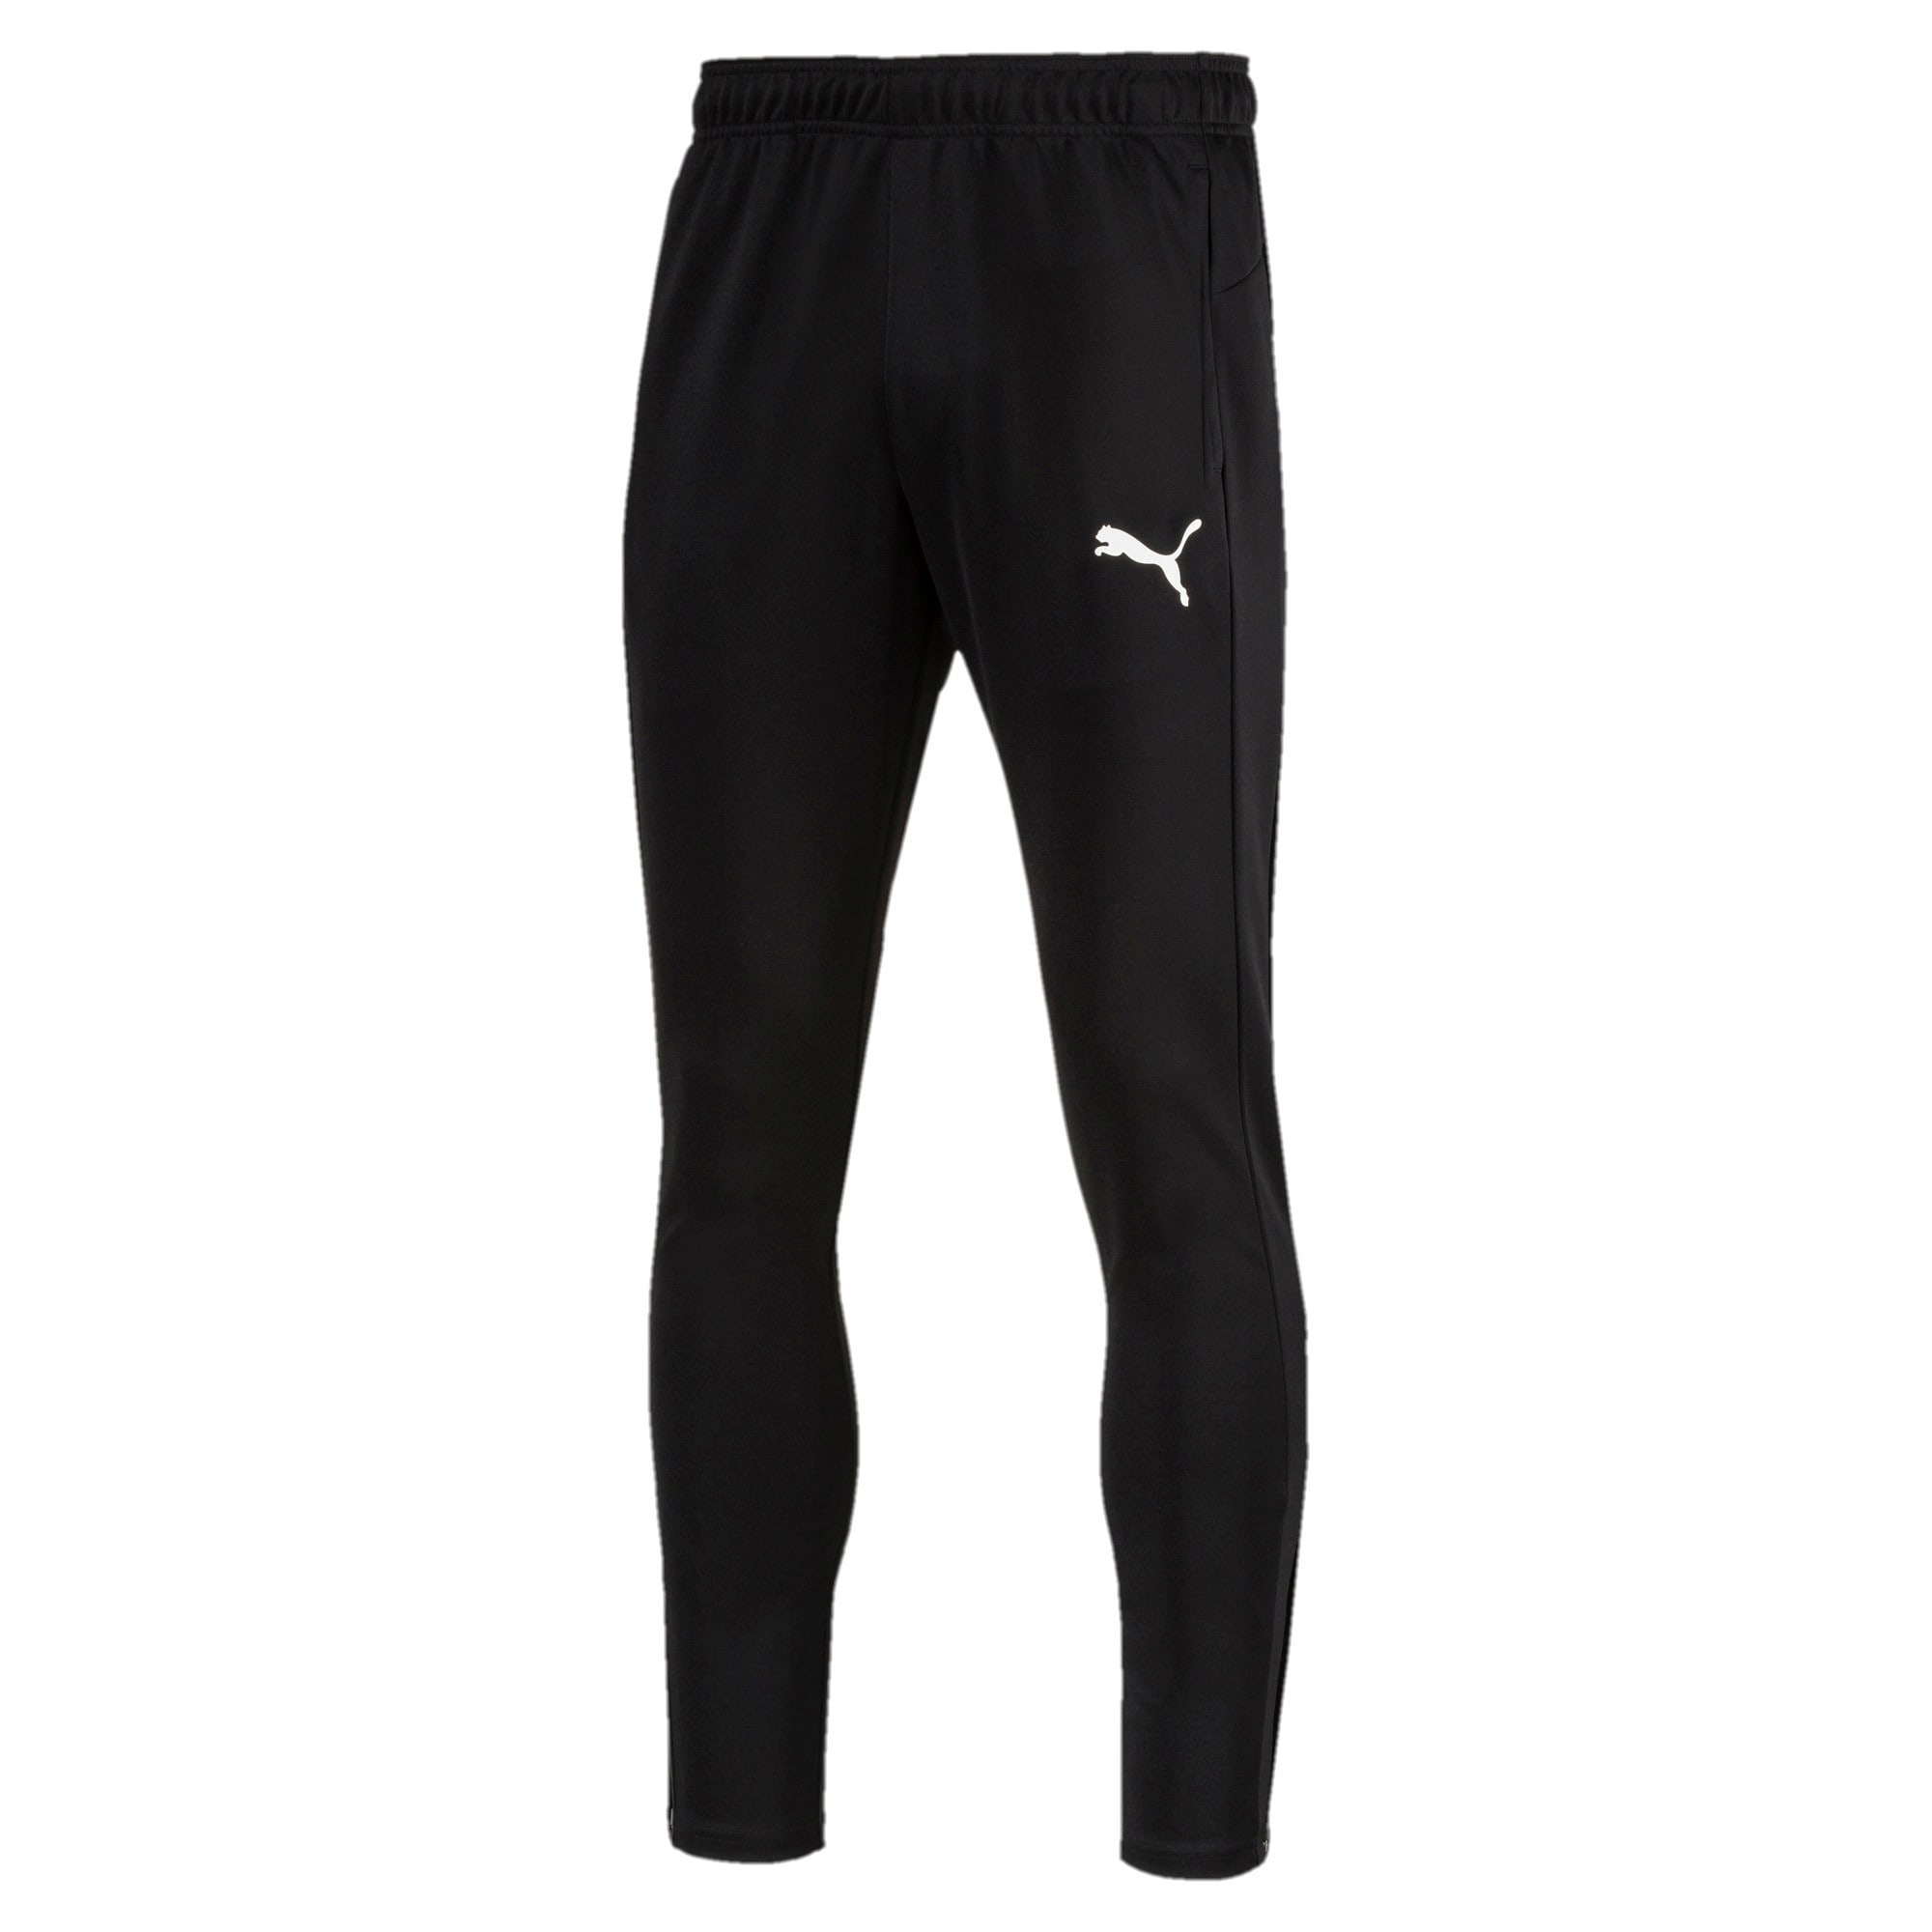 Thumbnail 1 of Active Herren Tricot Sweatpants, Puma Black, medium